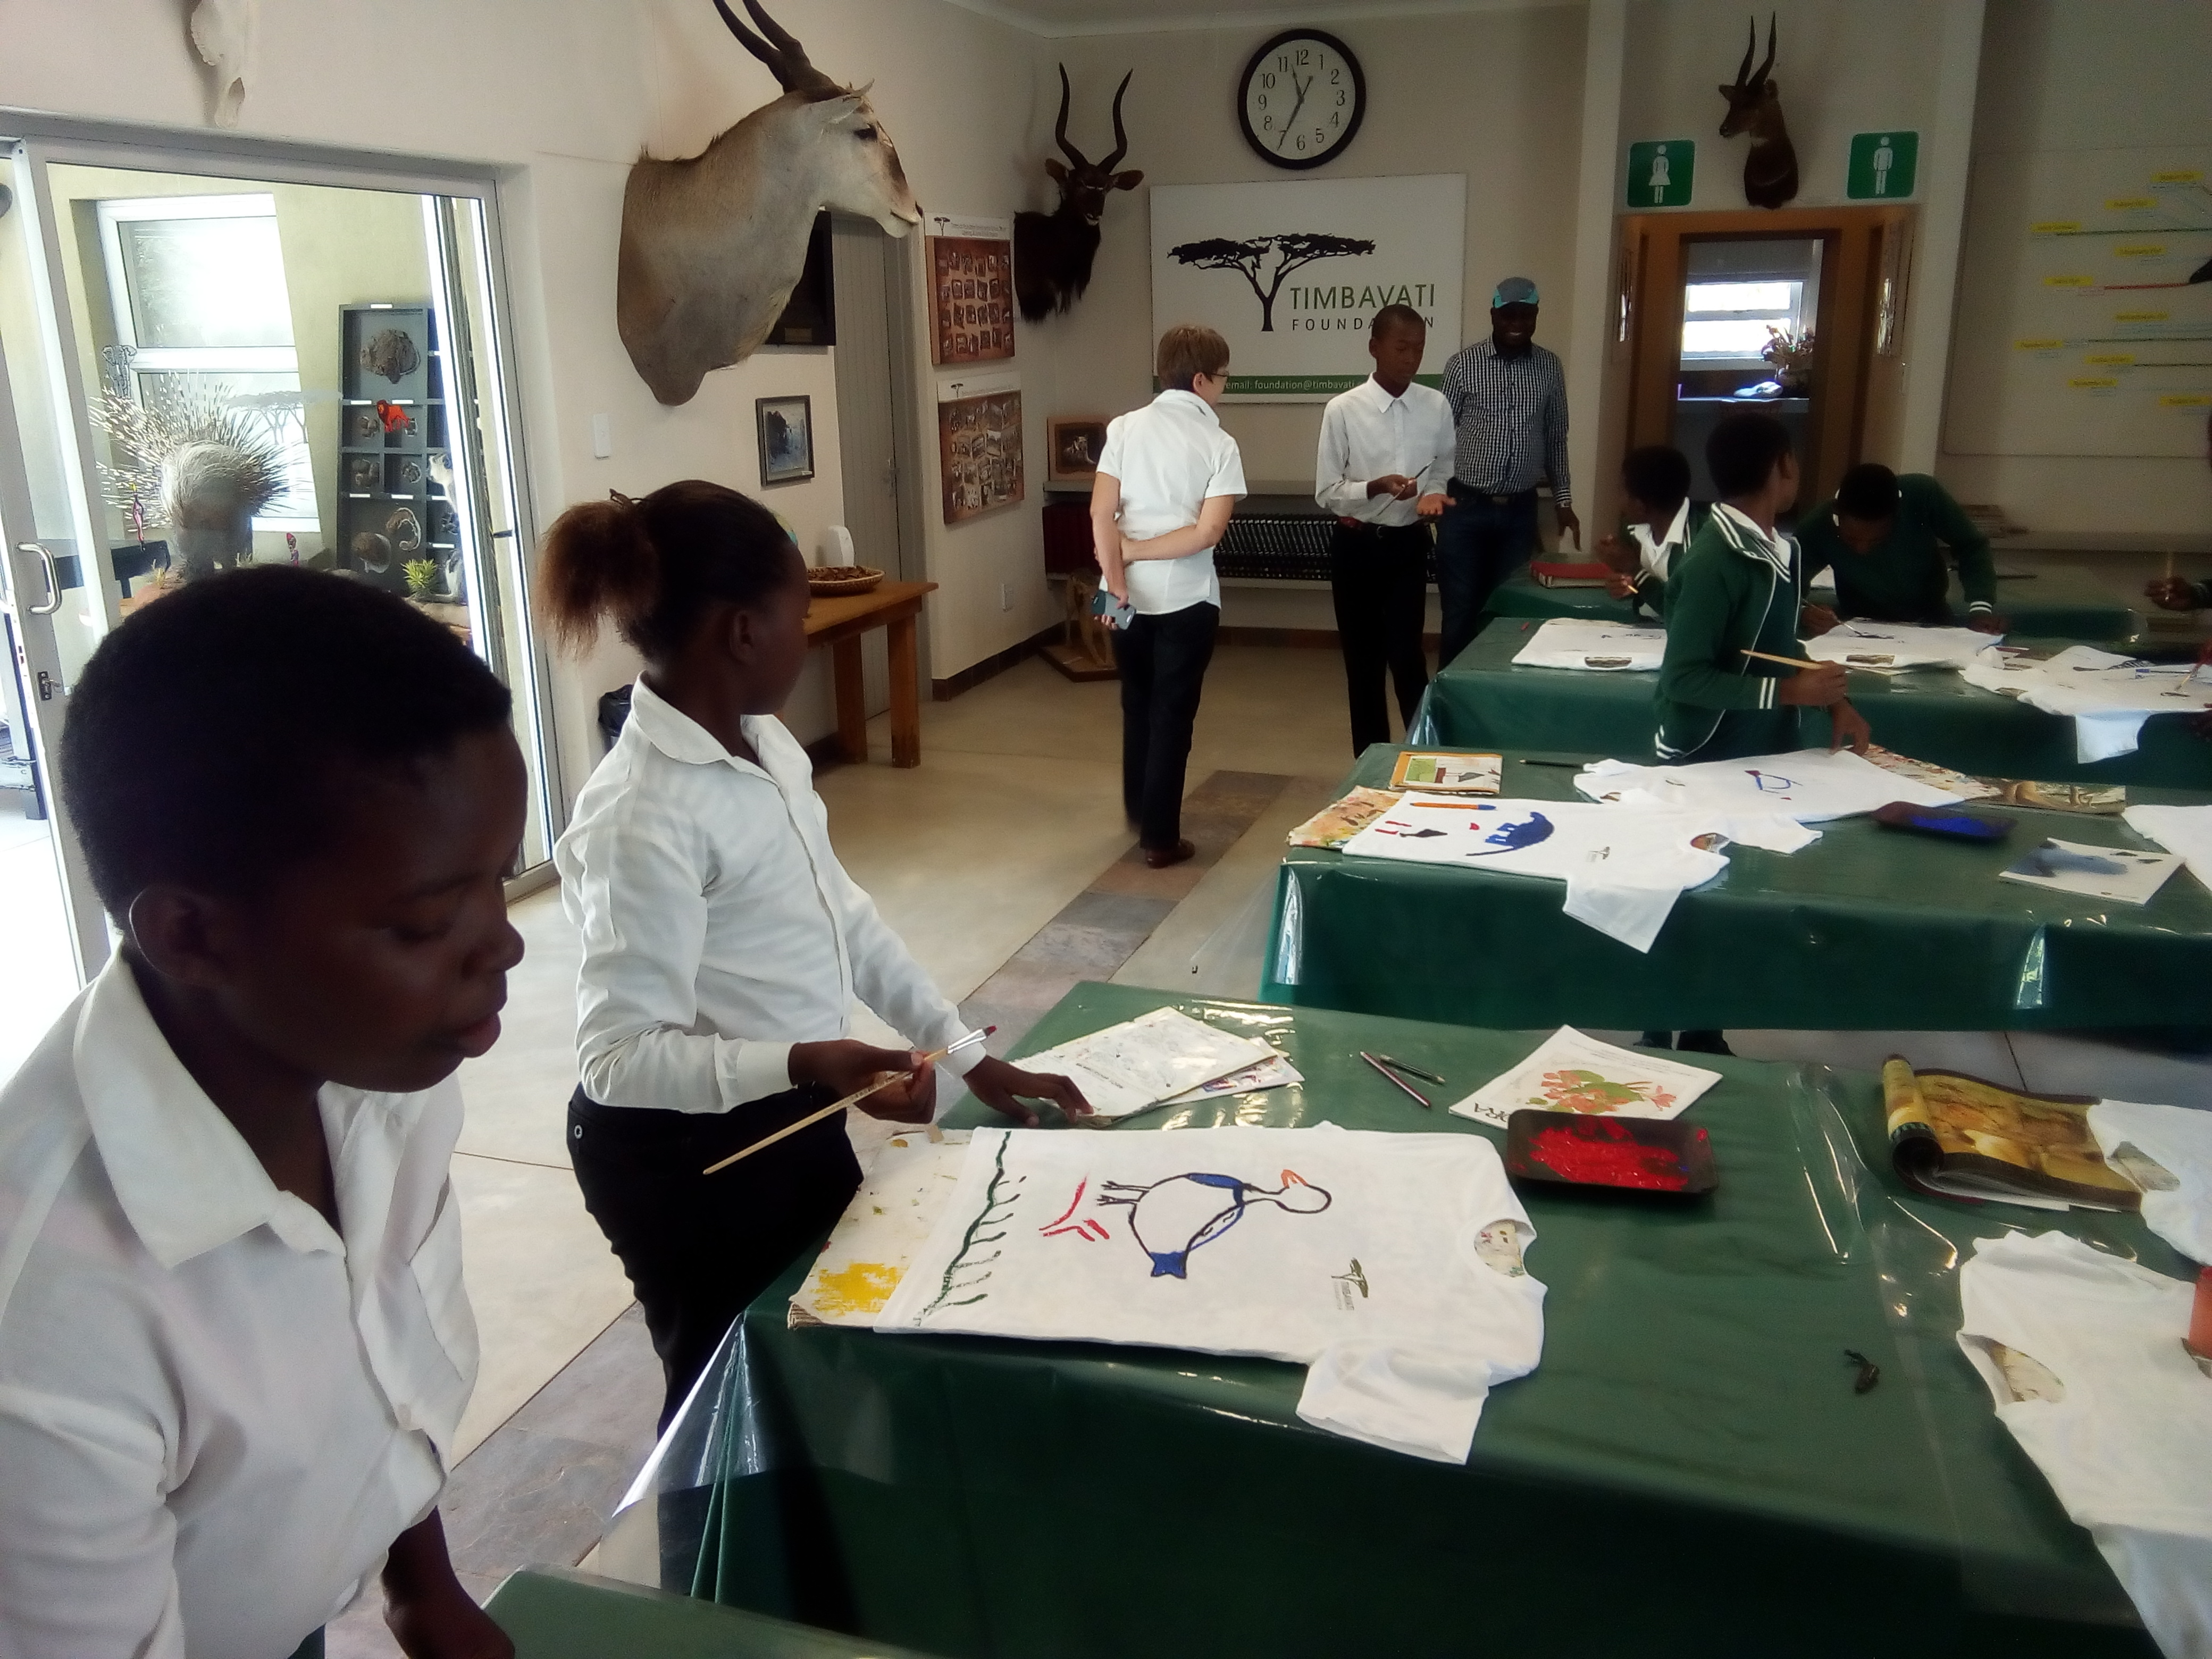 The Timbavati Foundation Manager enjoying the art work of the students